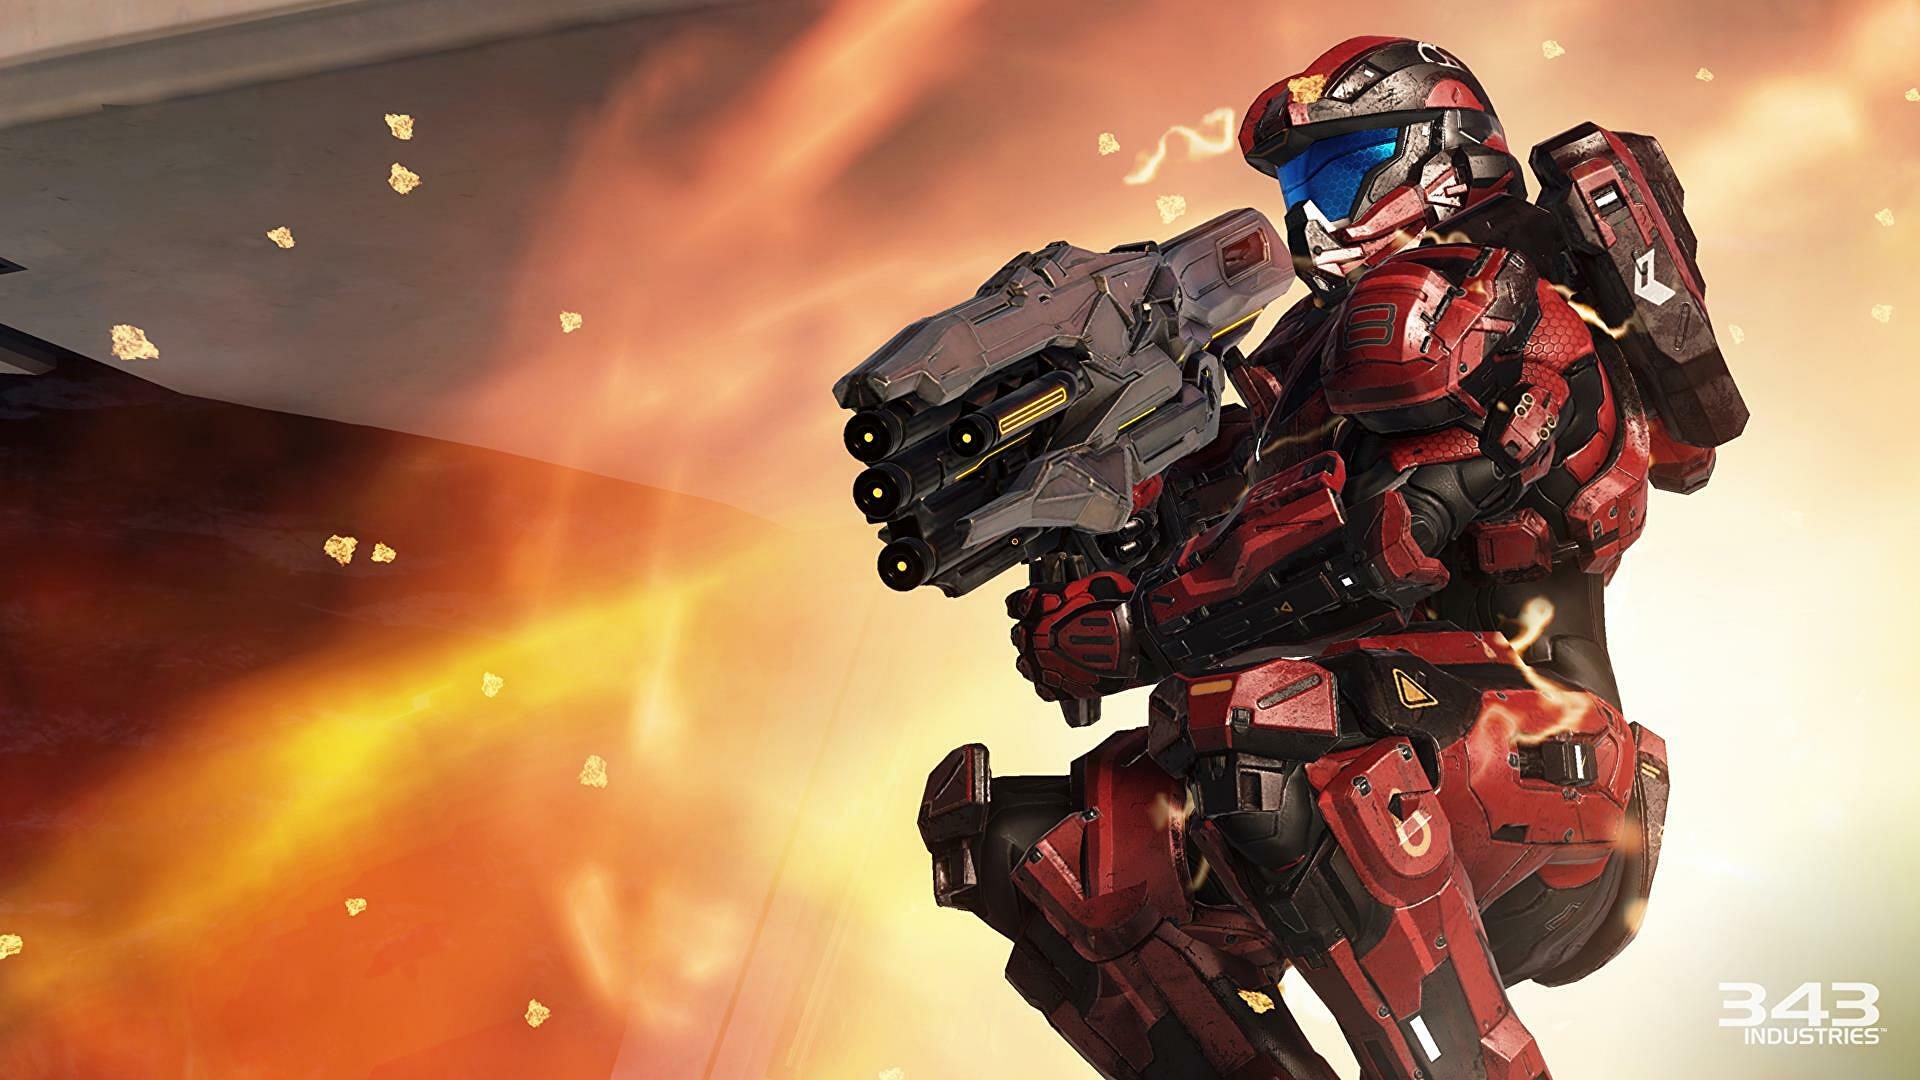 343 says Halo 5 is not coming to PC, again - halo 5 warzone gamescom 2015 5